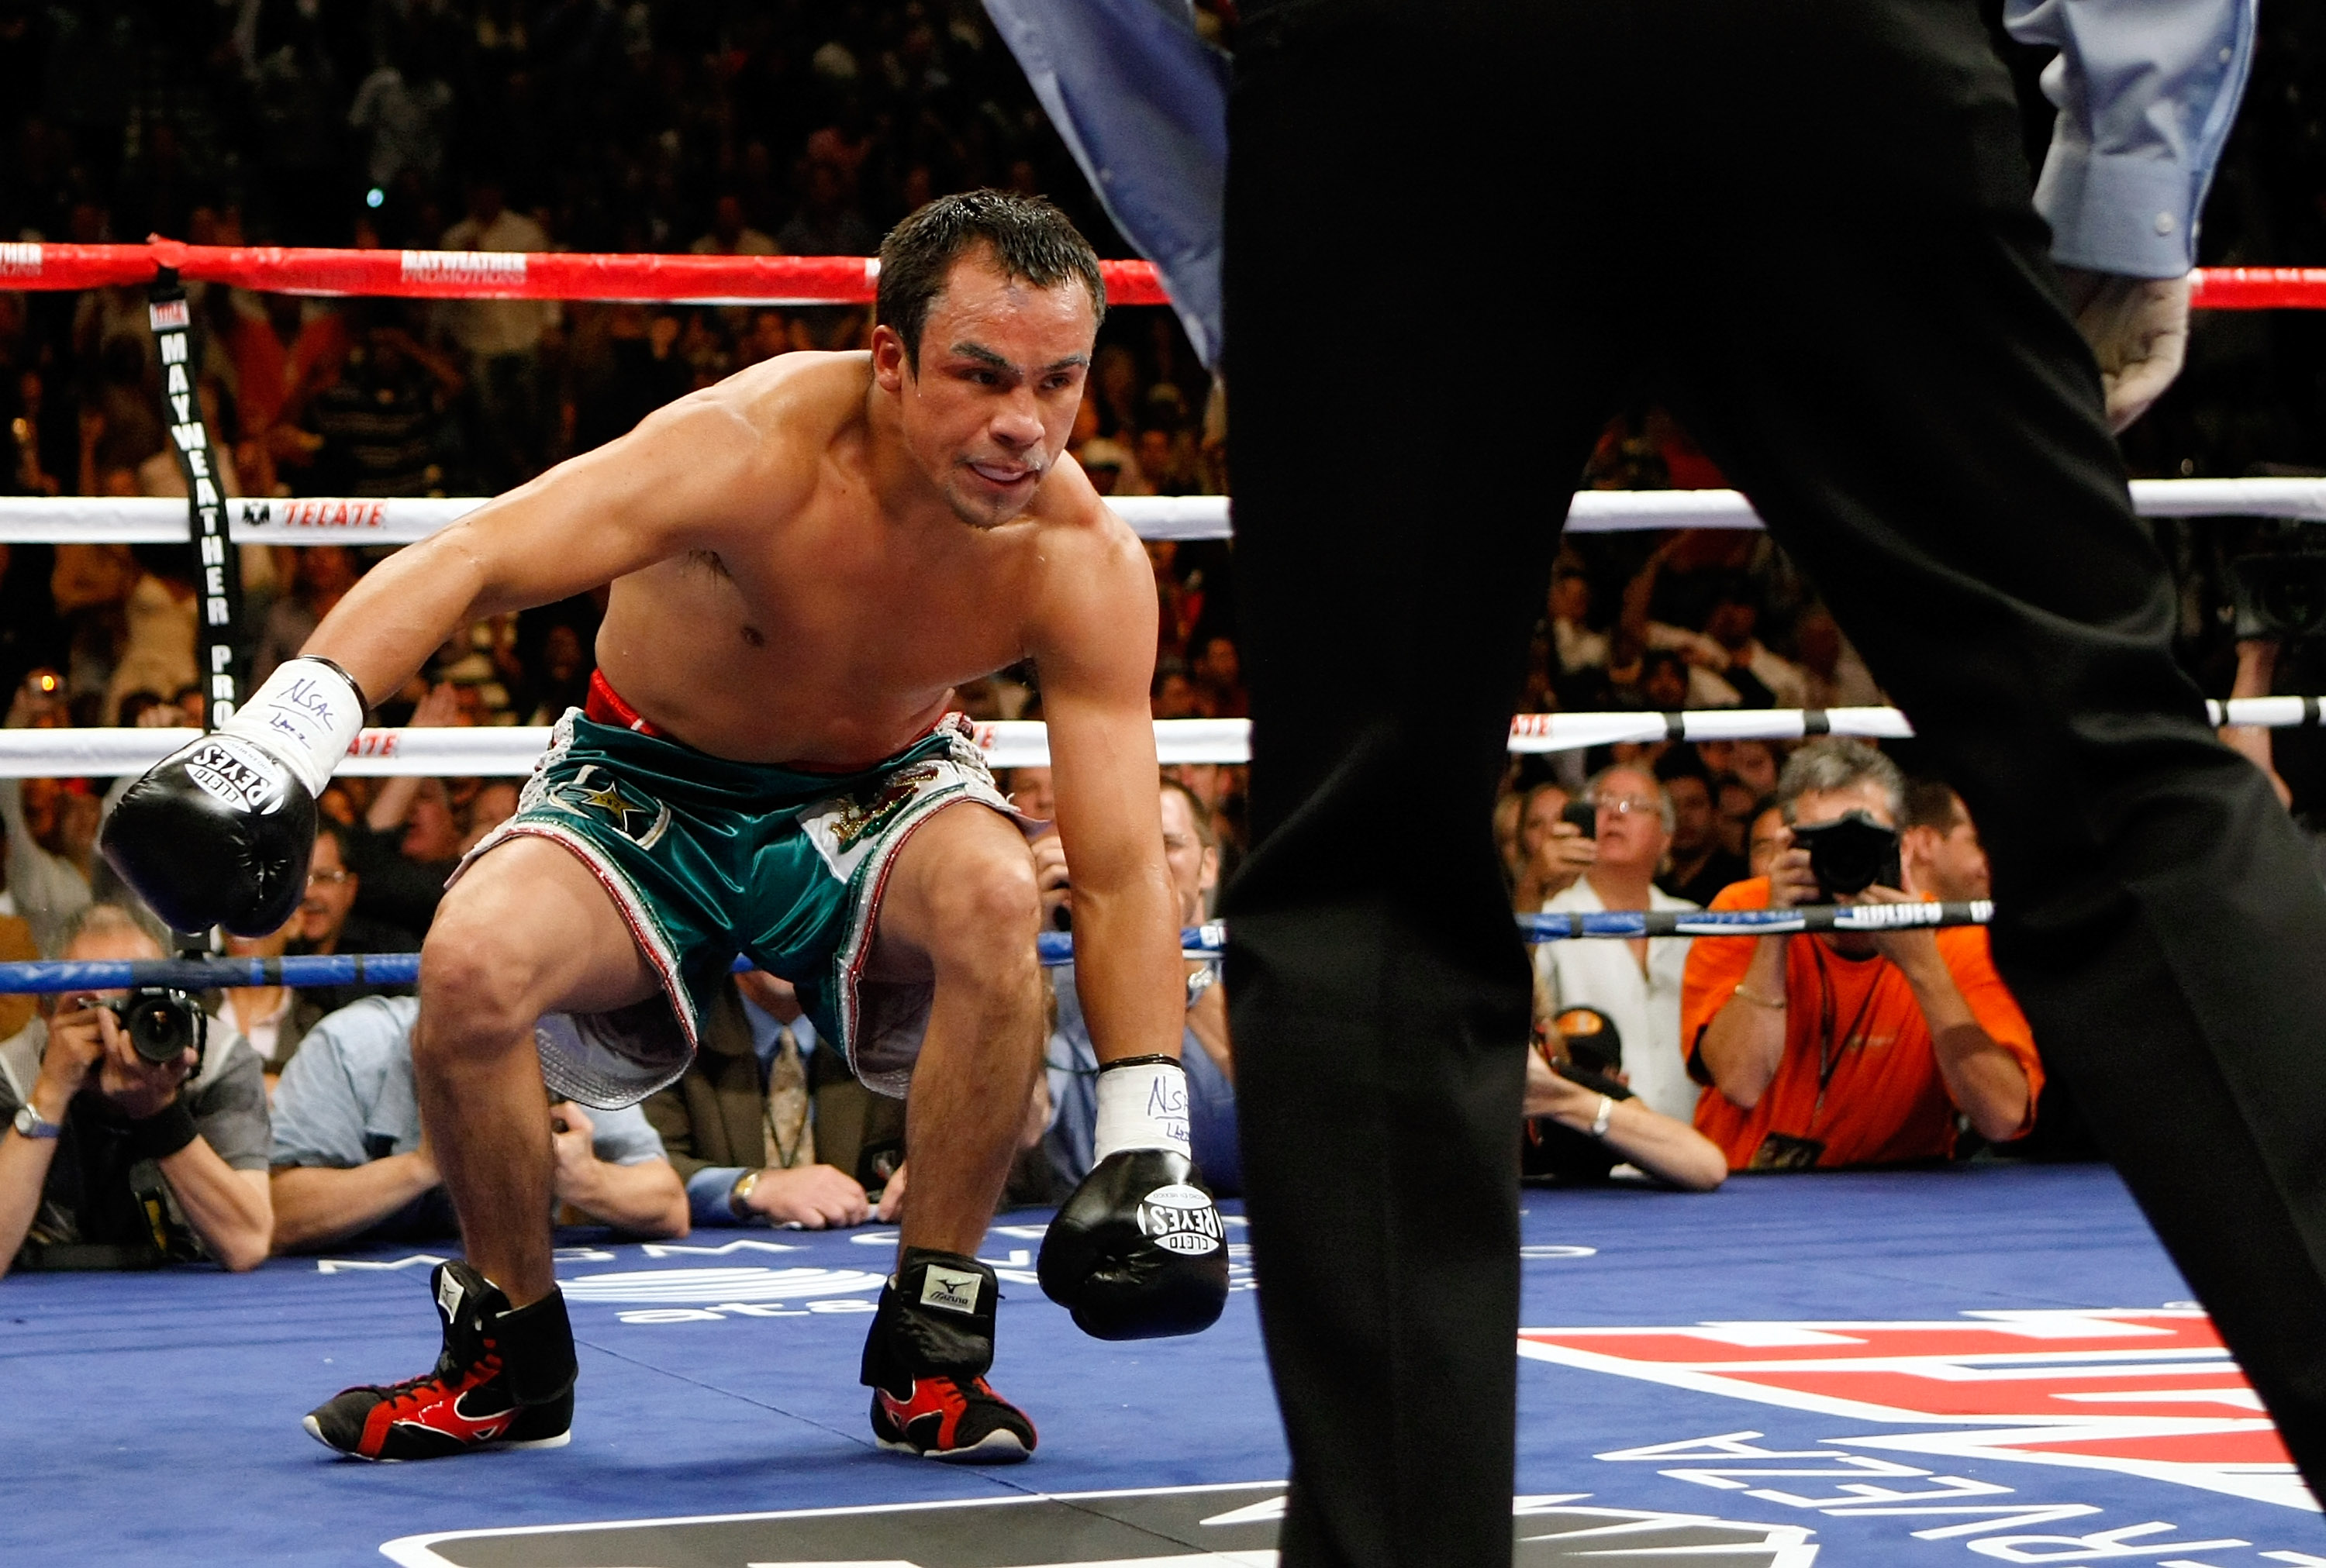 LAS VEGAS - SEPTEMBER 19:  Juan Manuel Marquez gets up off the canvas after he was knocked down by Floyd Mayweather Jr. in the second round of their fight at the MGM Grand Garden Arena September 19, 2009 in Las Vegas, Nevada. Mayweather won by unanimous d